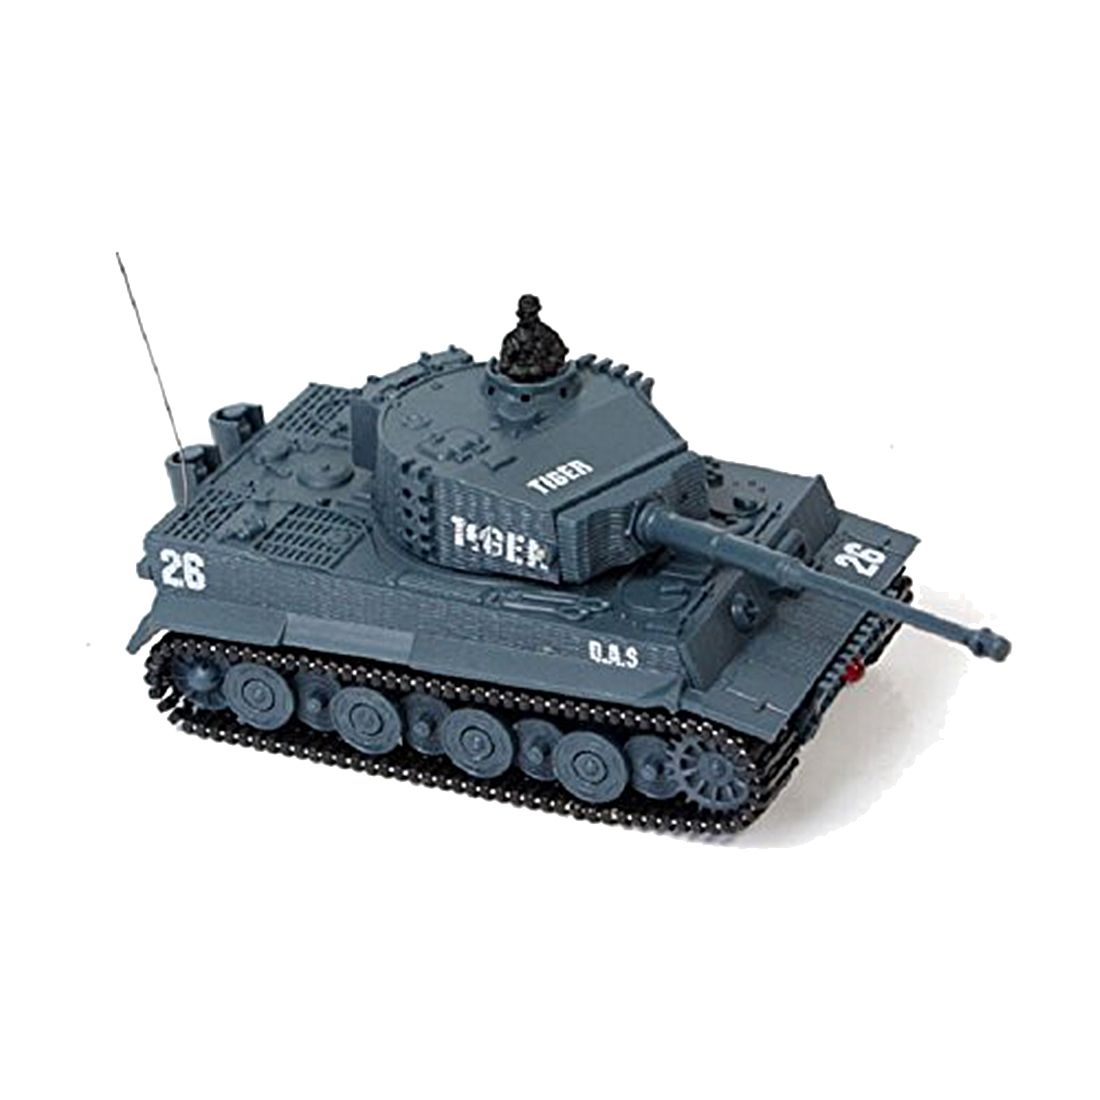 New Mini 1:72 49MHz R/C Radio Remote Control Tiger Tank 20M Kids Toy Gift Army (Grey) сотовый телефон irbis sp453